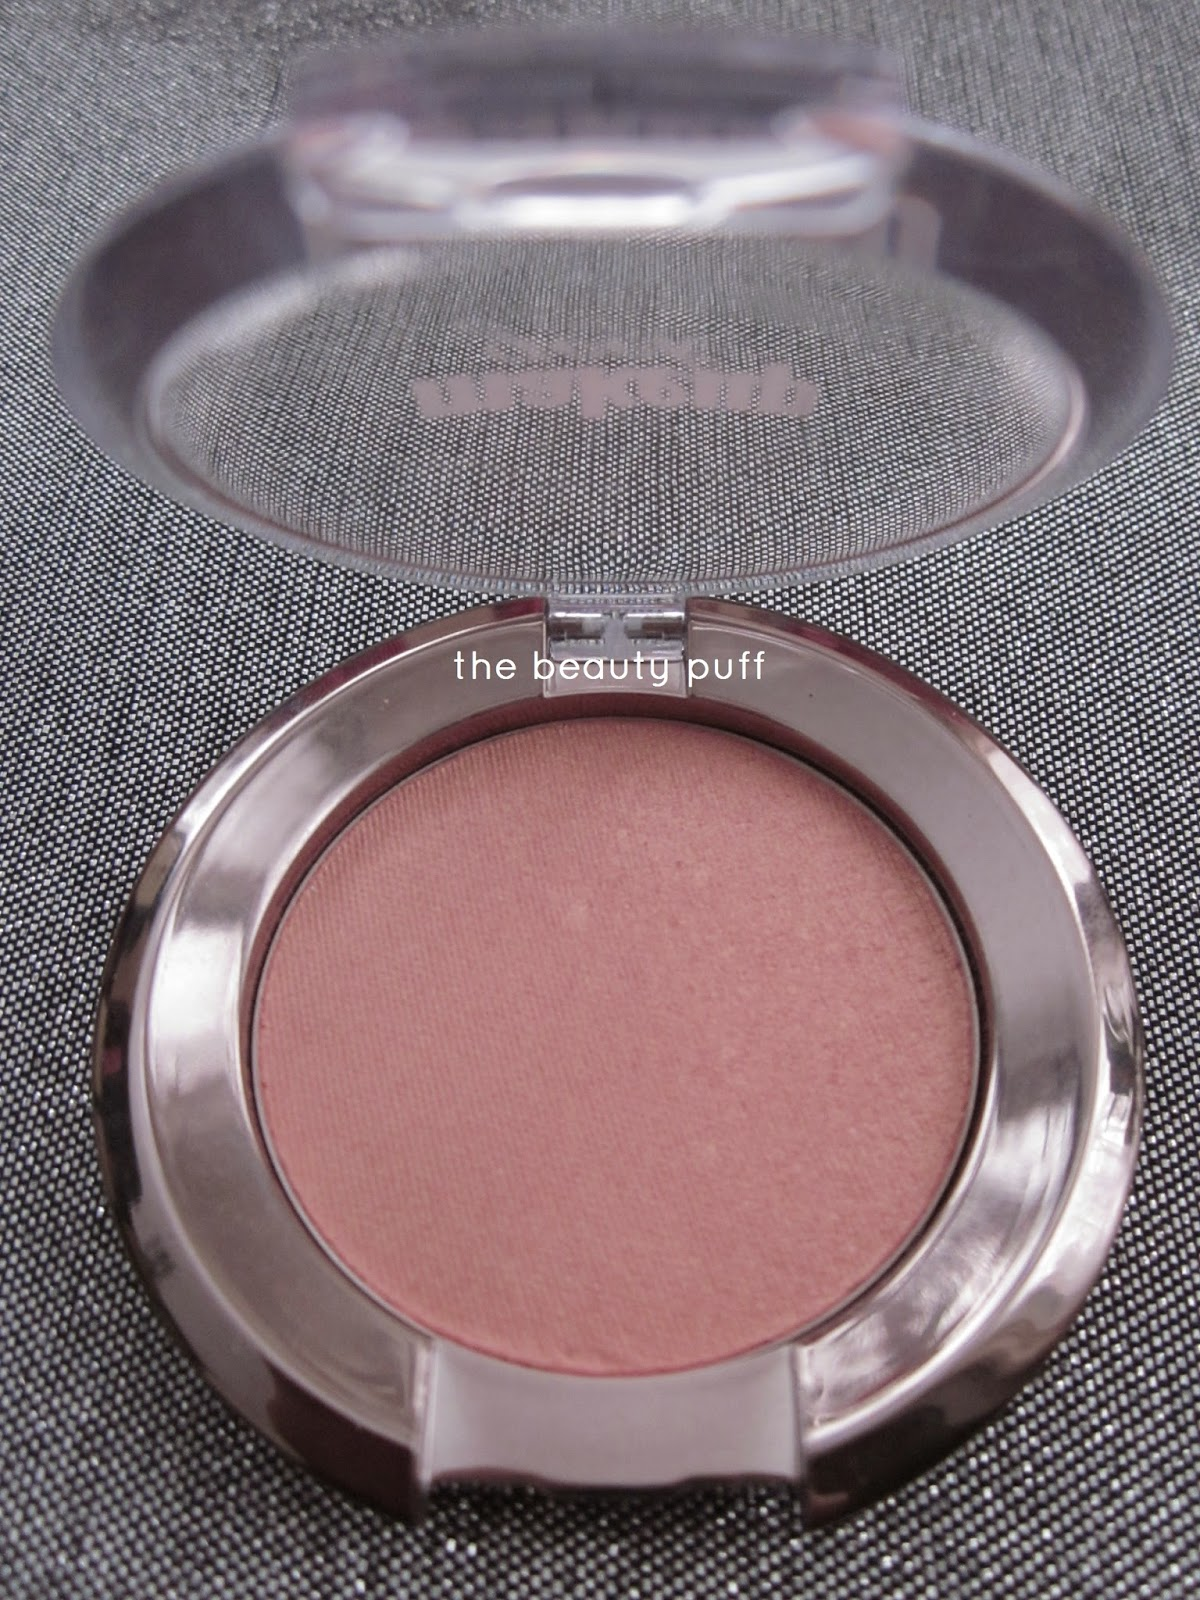 Makeup Geek Romance Blush - The Beauty Puff